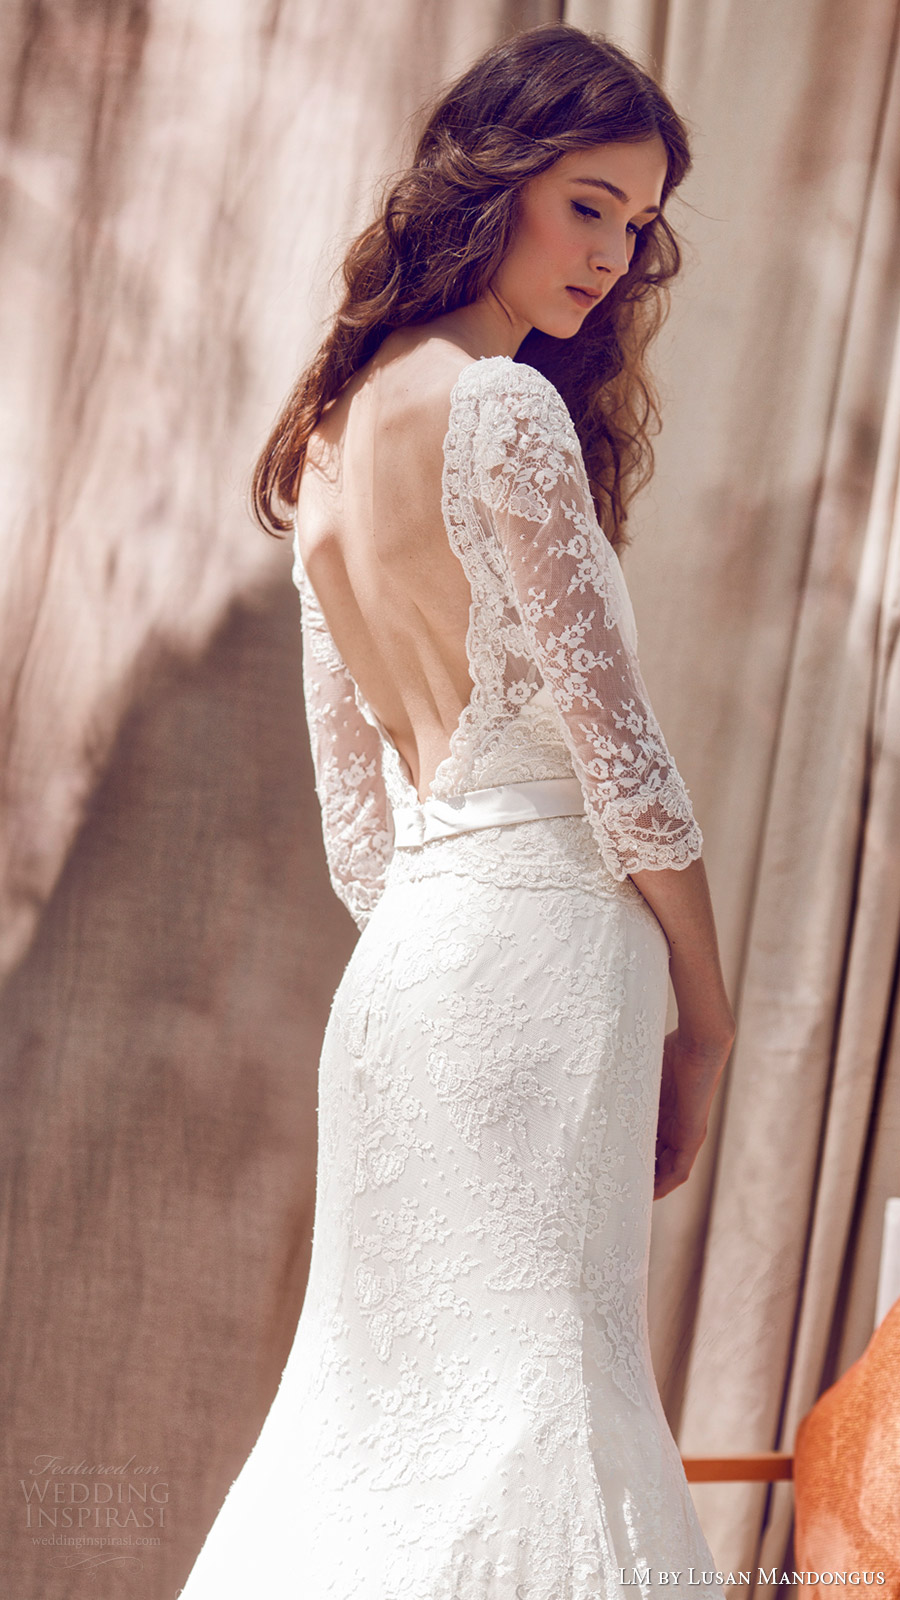 lm lusan mandongus bridal 2017 illusion bateau neck 3 quarter sleees lace trumpet wedding dress (lm3091b) zbv open back train